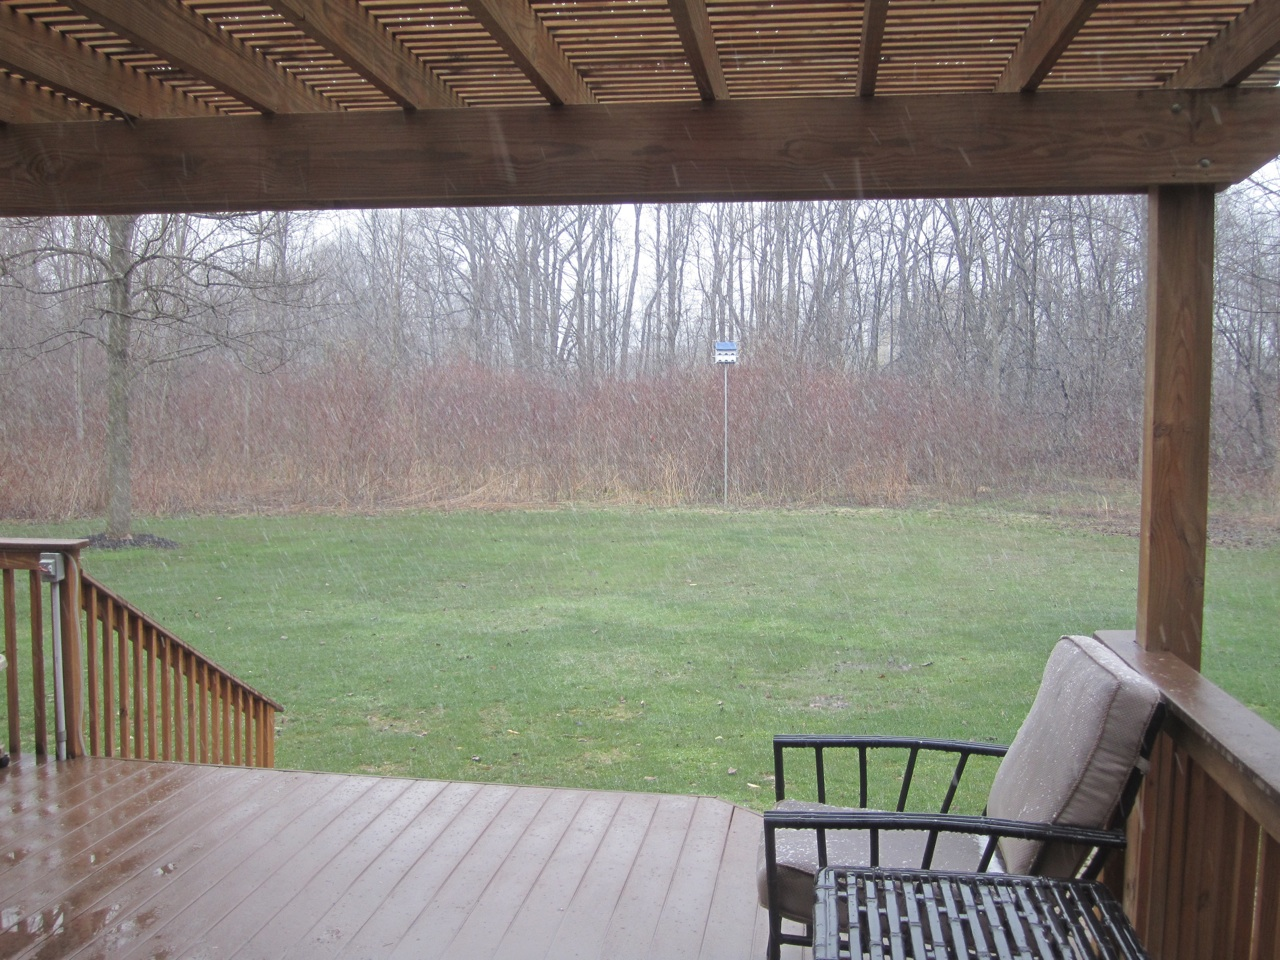 Snowing In Our Backyard